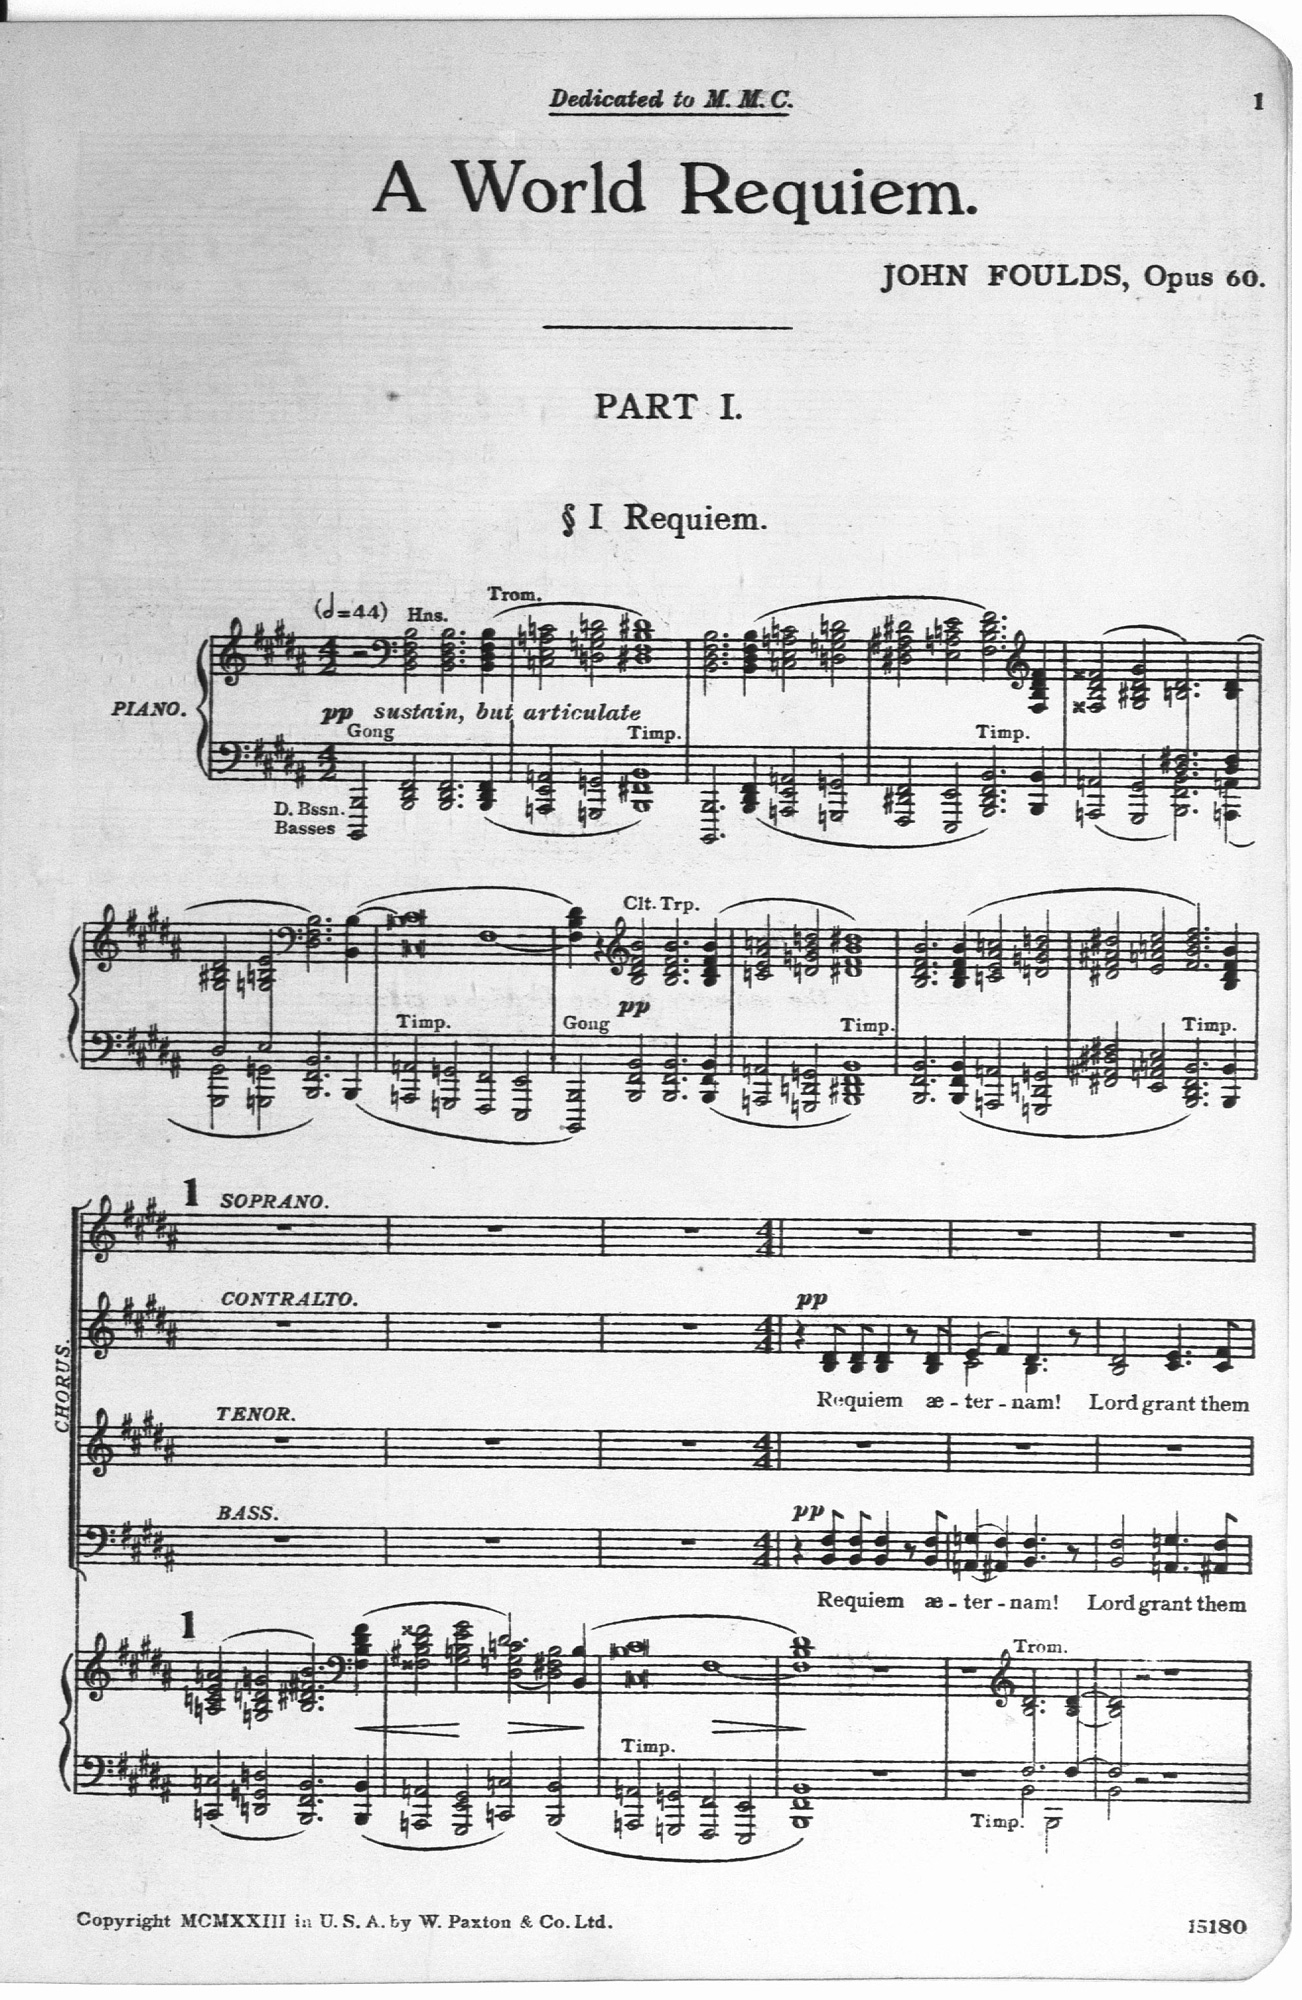 John Fould's 1919-1921 composition A World Requiem designed to be a musical memorial for the dead.